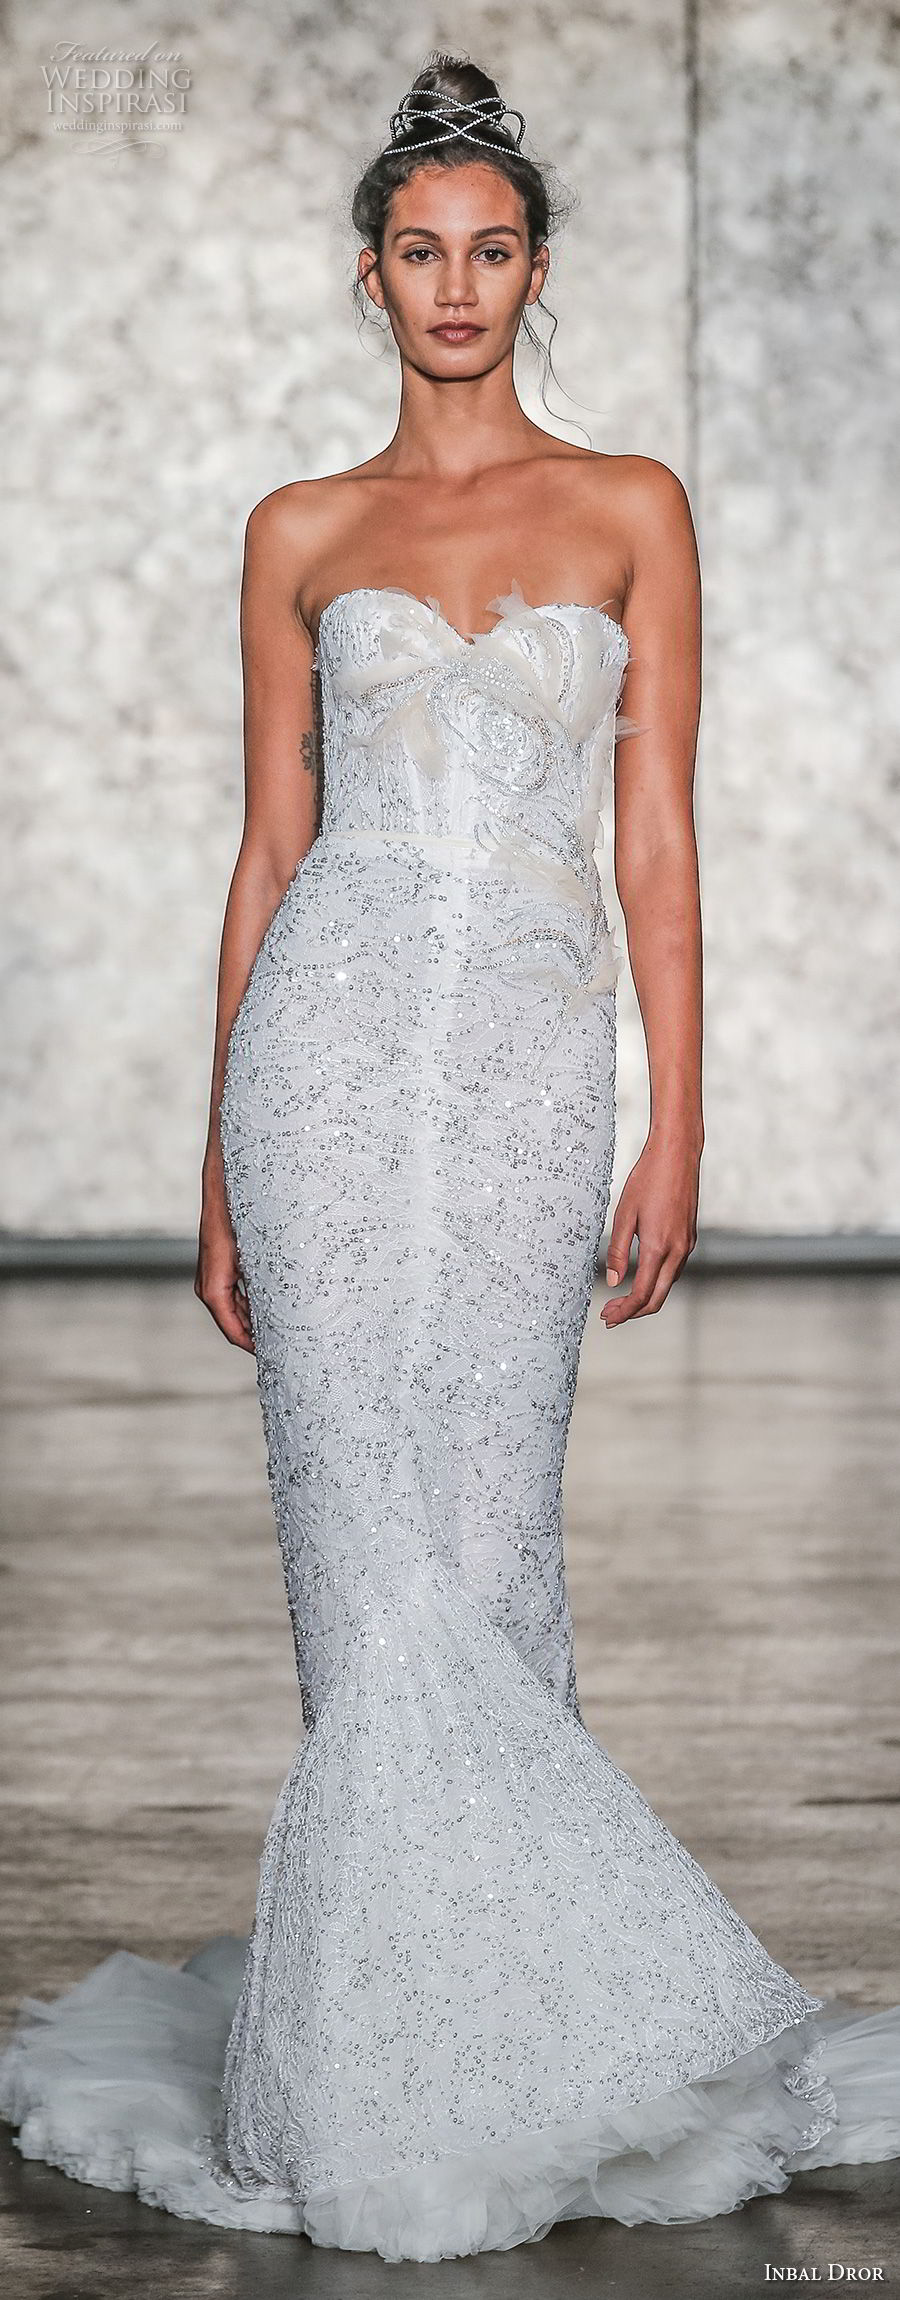 inbal dror fall 2018 bridal strapless sweetheart neckline full embellishment elegant mermaid wedding dress sweep train (23) mv